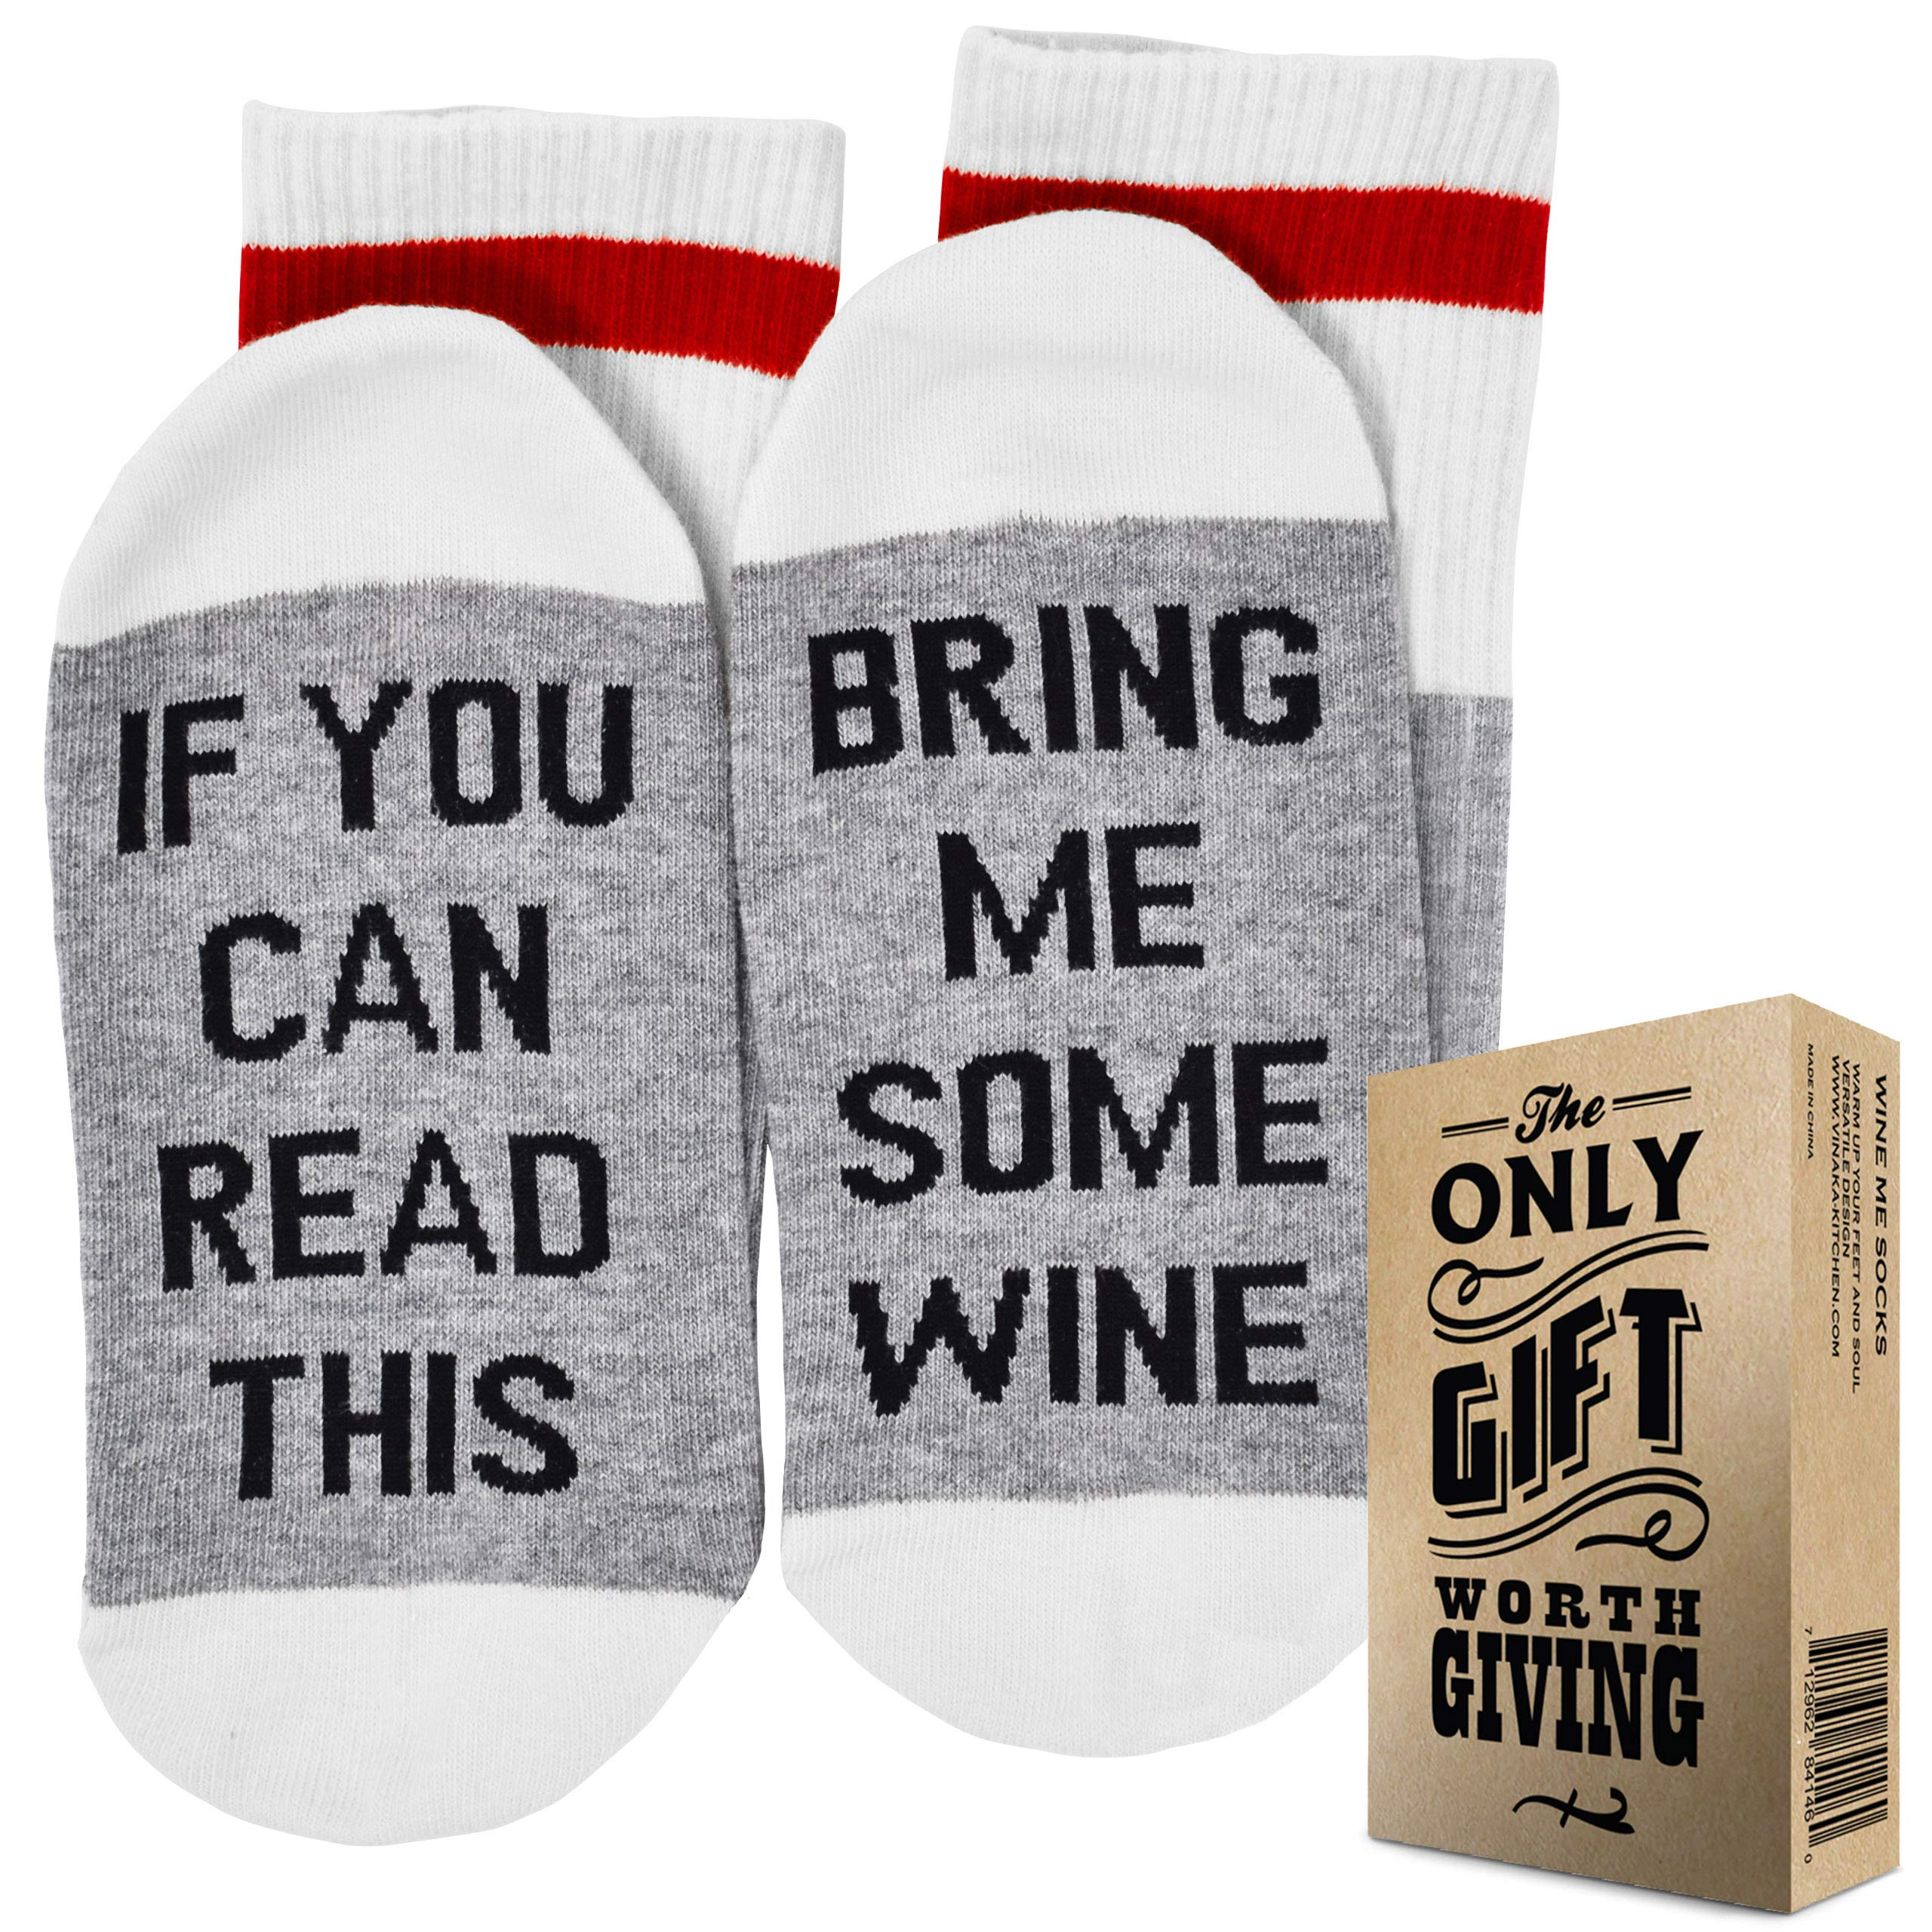 "Wine Gifts for Women -""If you can read this bring me some Wine"" Funny Accessory for Her, Gifts for Women Under 10 Dollars. Mother's day gift, funny gifts for women"